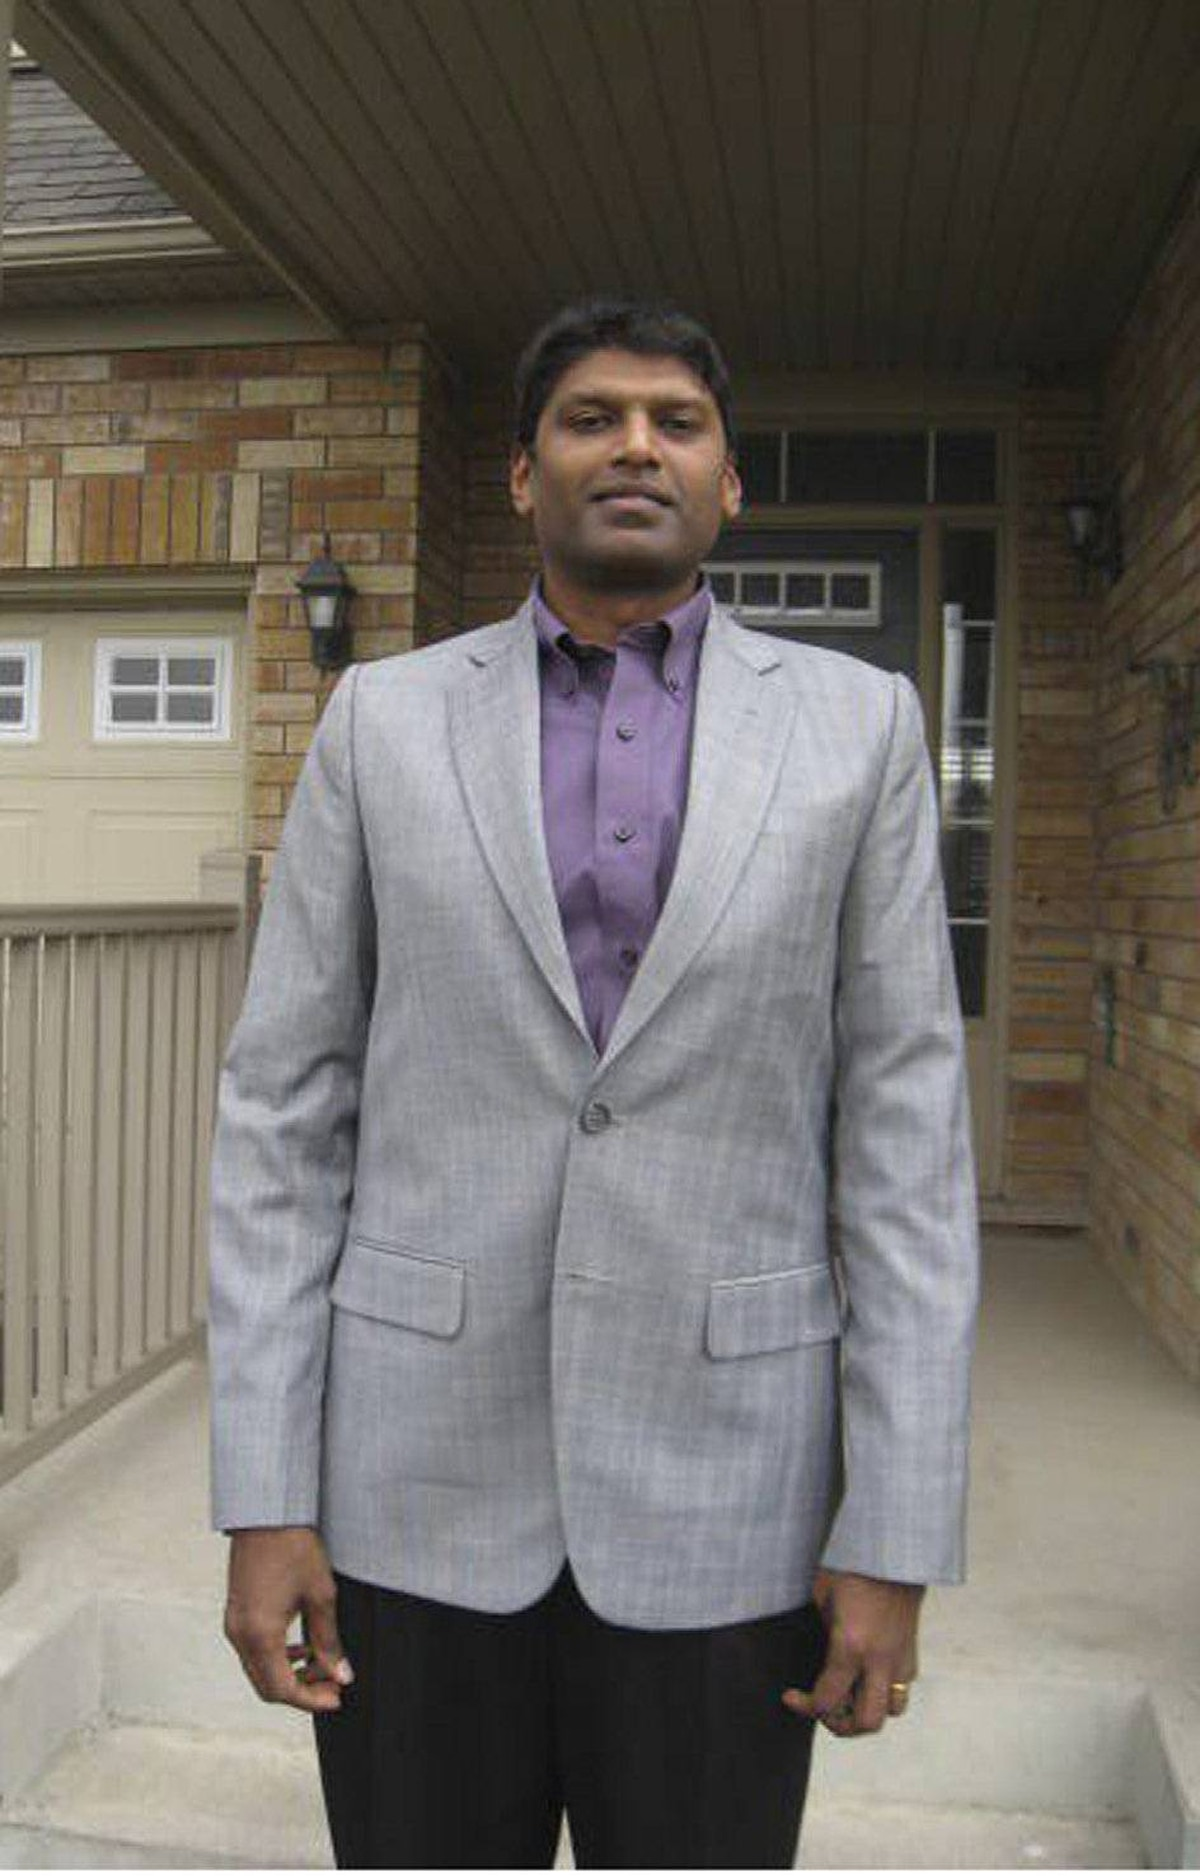 """FREDRIC SURESH Lives in Milton, Ont. Emigrated from India in 1996 HIS STORY: """"I am an engineer by training but I had great difficulty in landing a job. I decided to change fields and went to York University to become a teacher. I now teach high school math and I absolutely enjoy my job."""""""